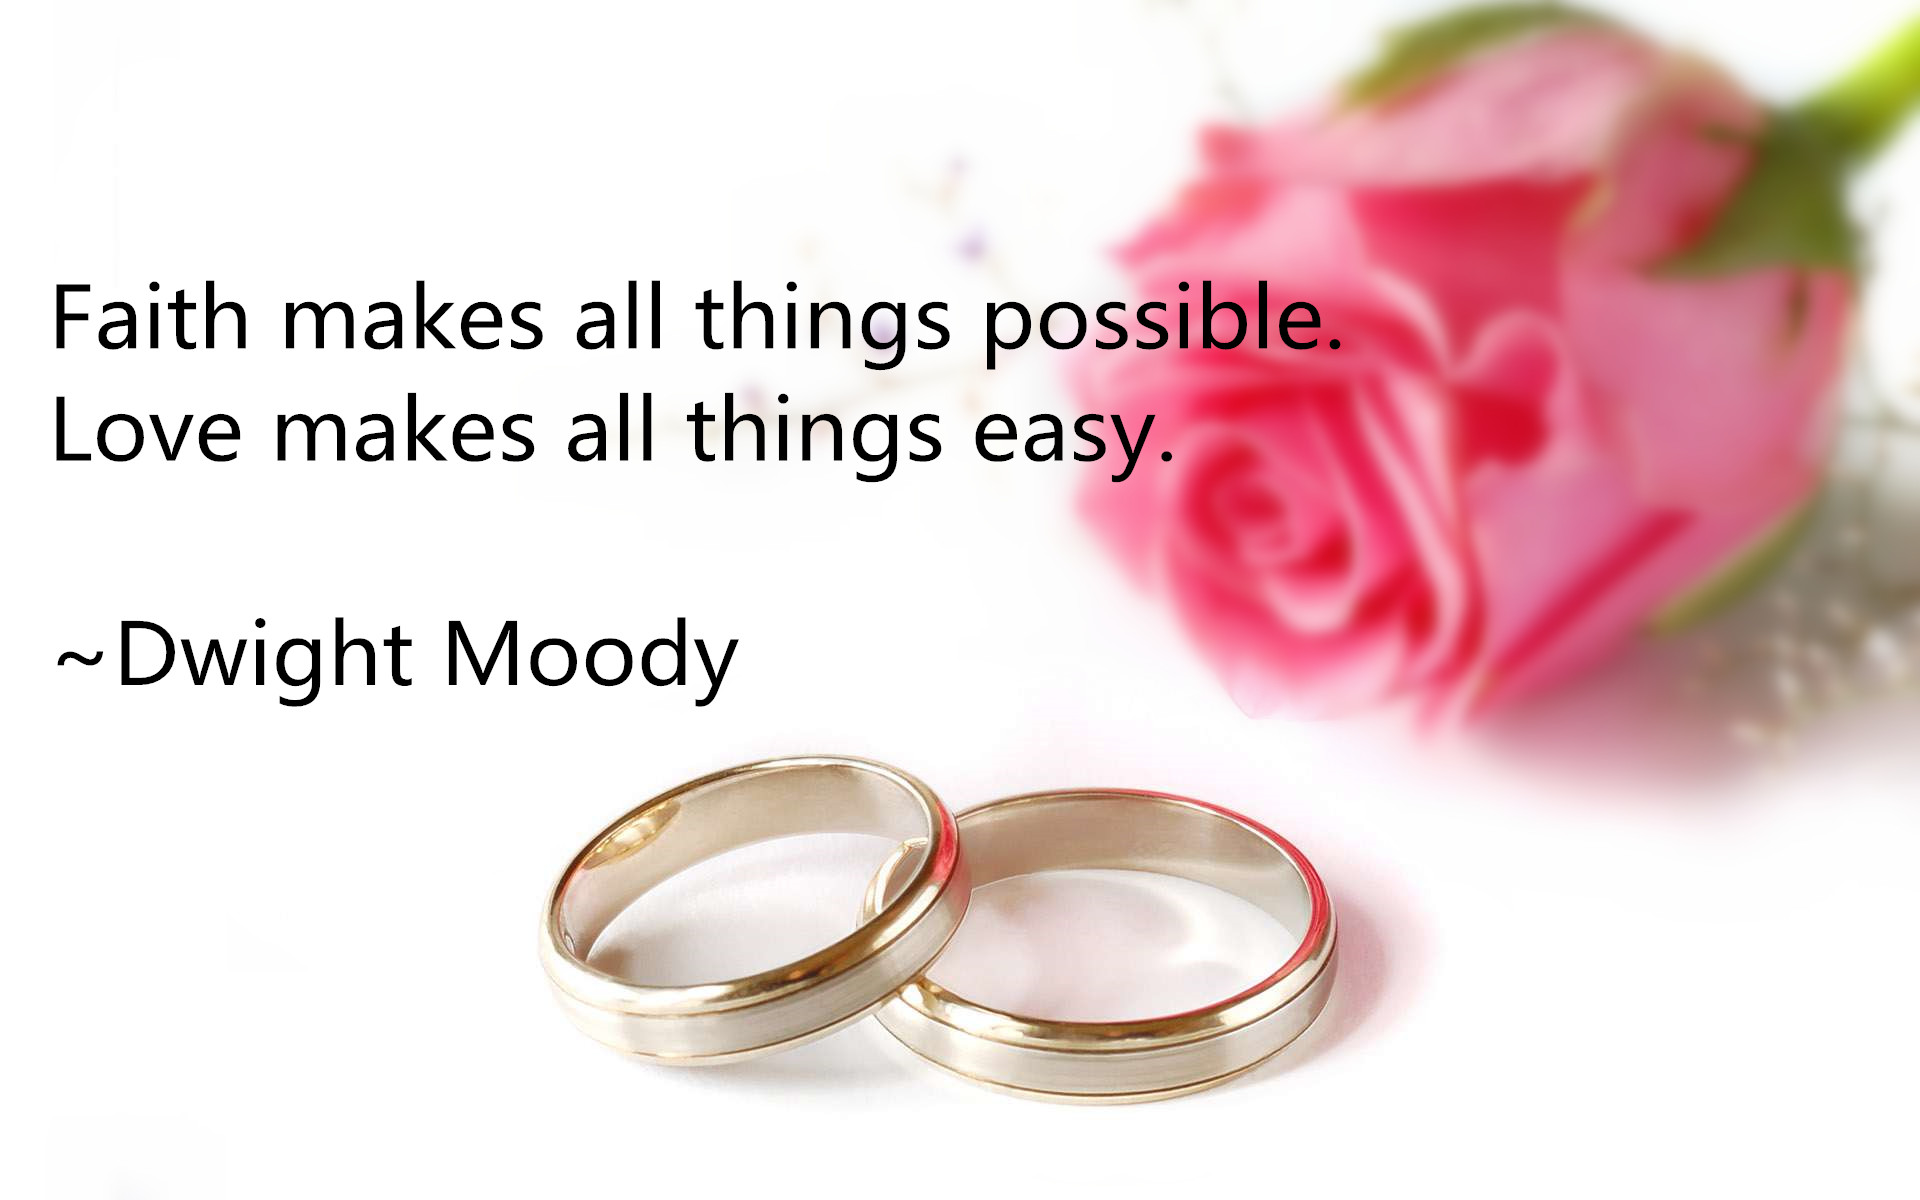 Cute Couples With Quotes Wallpaper Best Wedding Wishes What To Write In A Wedding Card